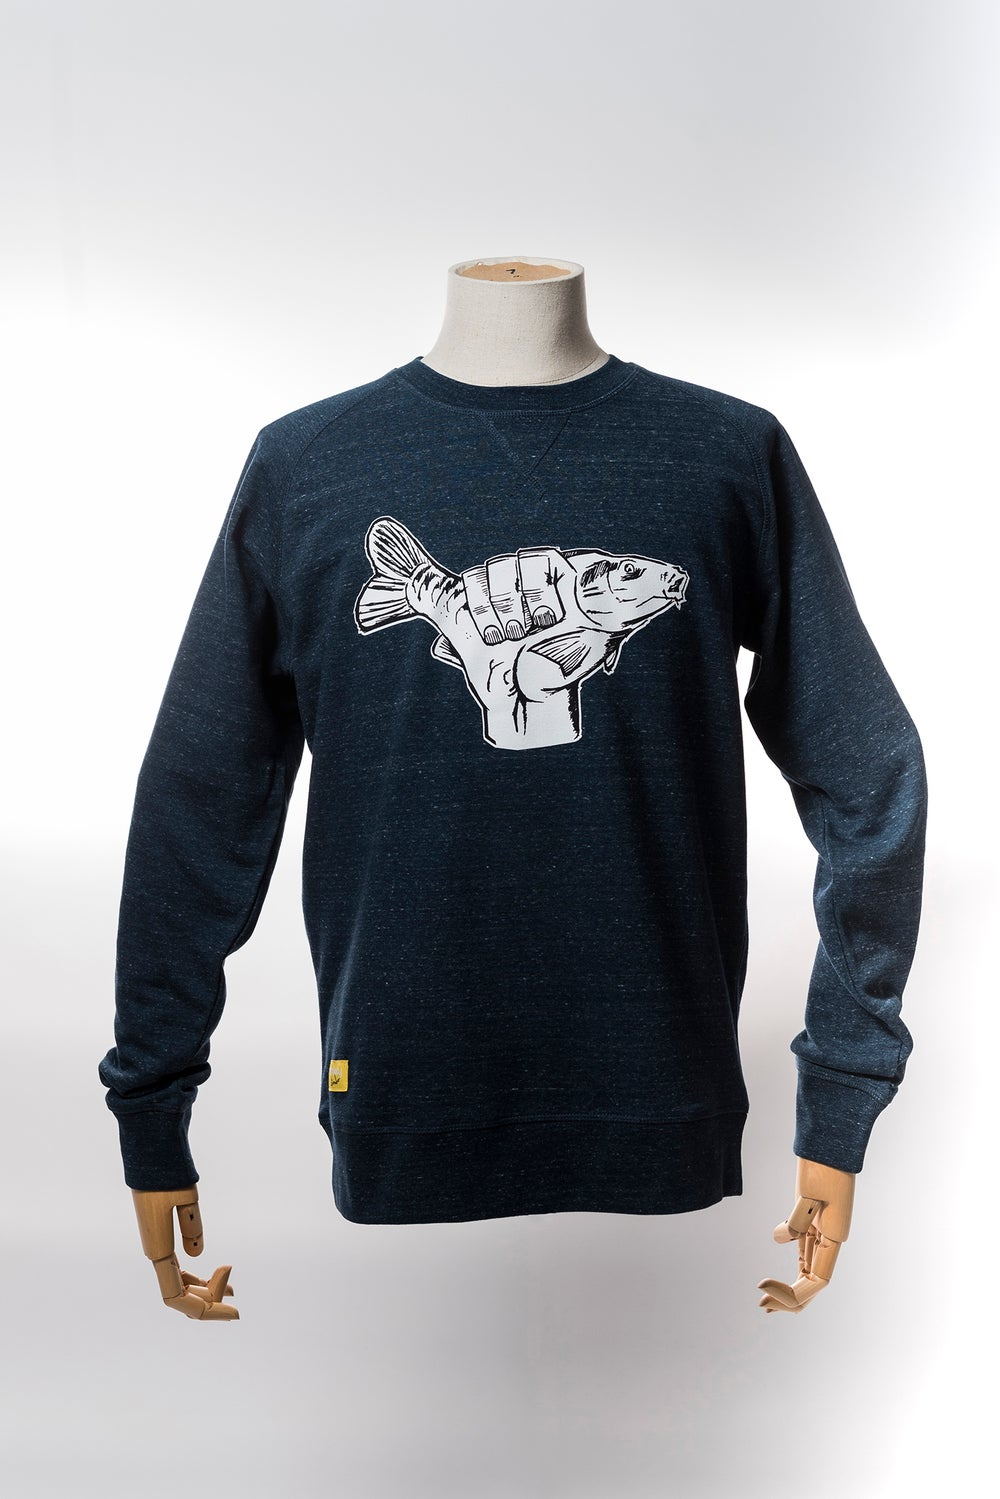 Image of Monkey Climber Carp Shaka crewneck I Heather Green - Denim - Teal